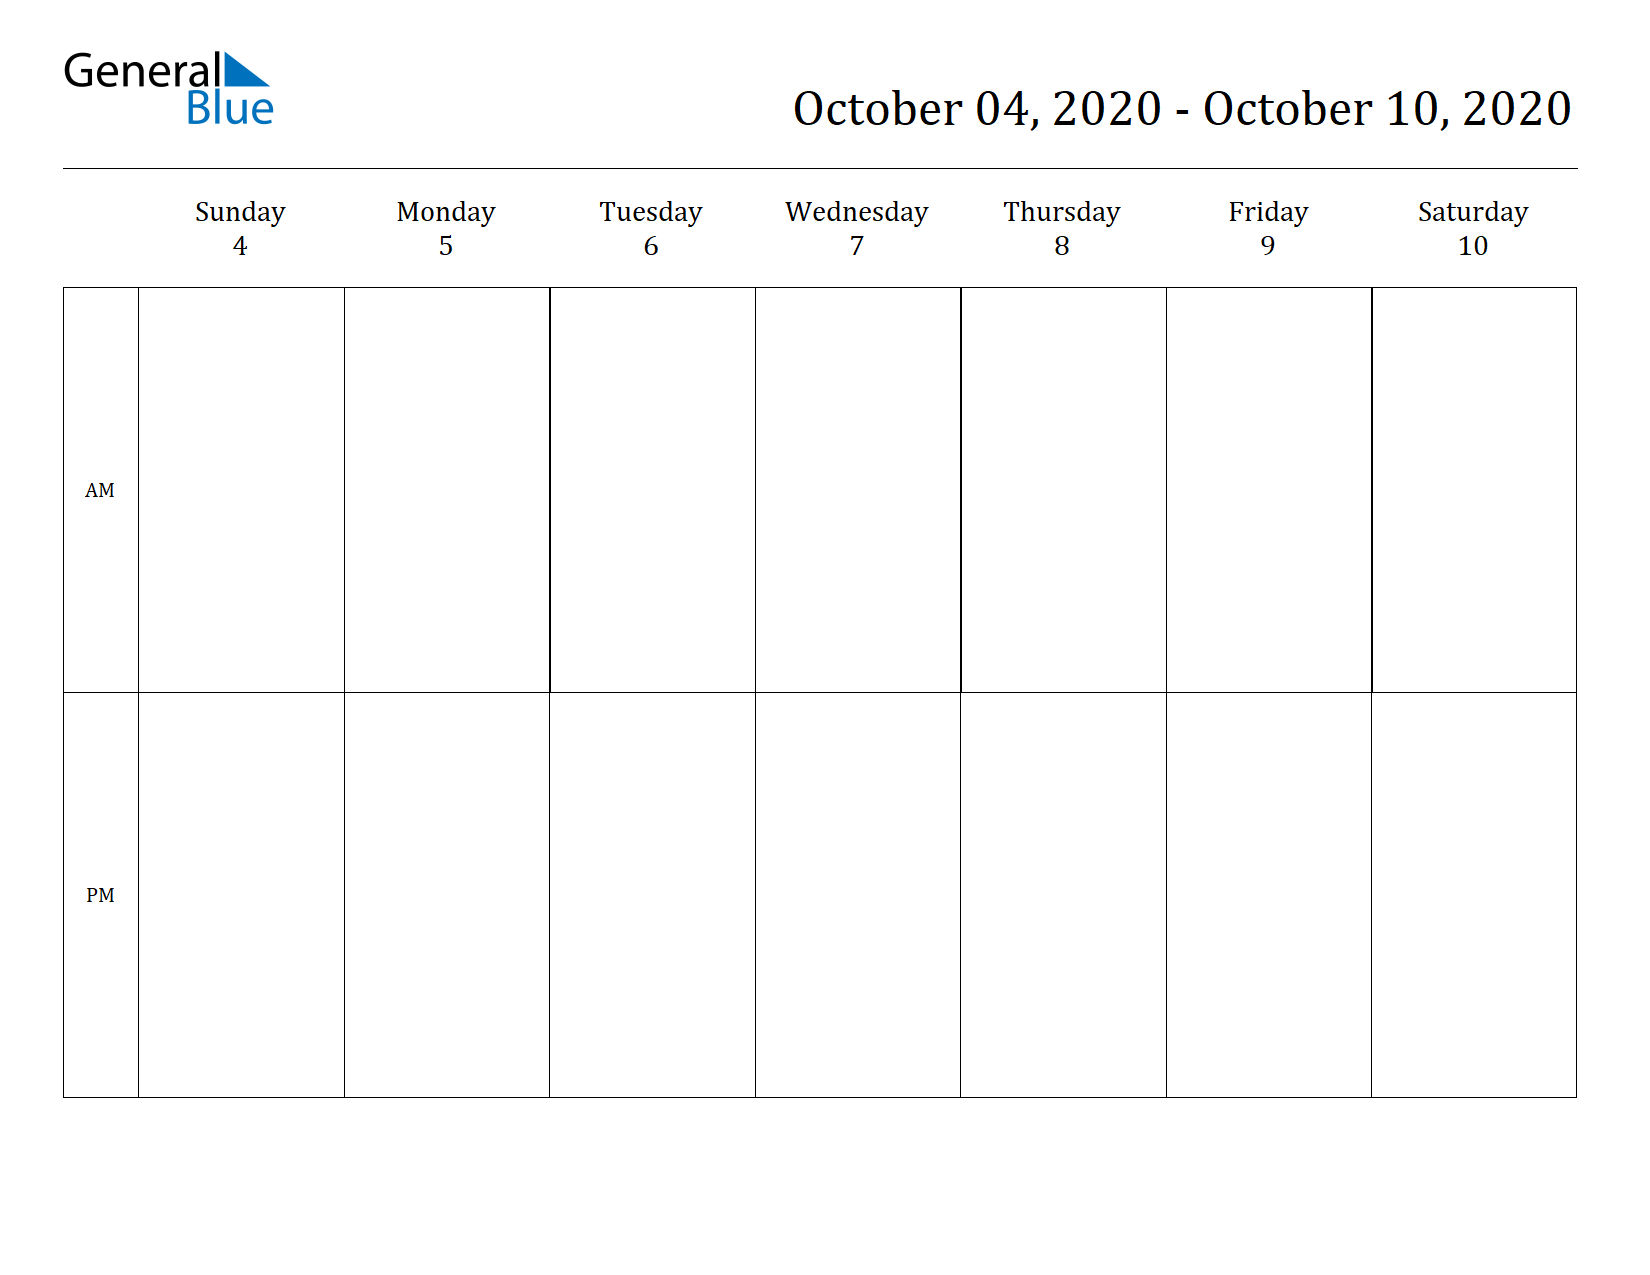 Weekly Calendar for Oct 04, 2020 to Oct 10, 2020